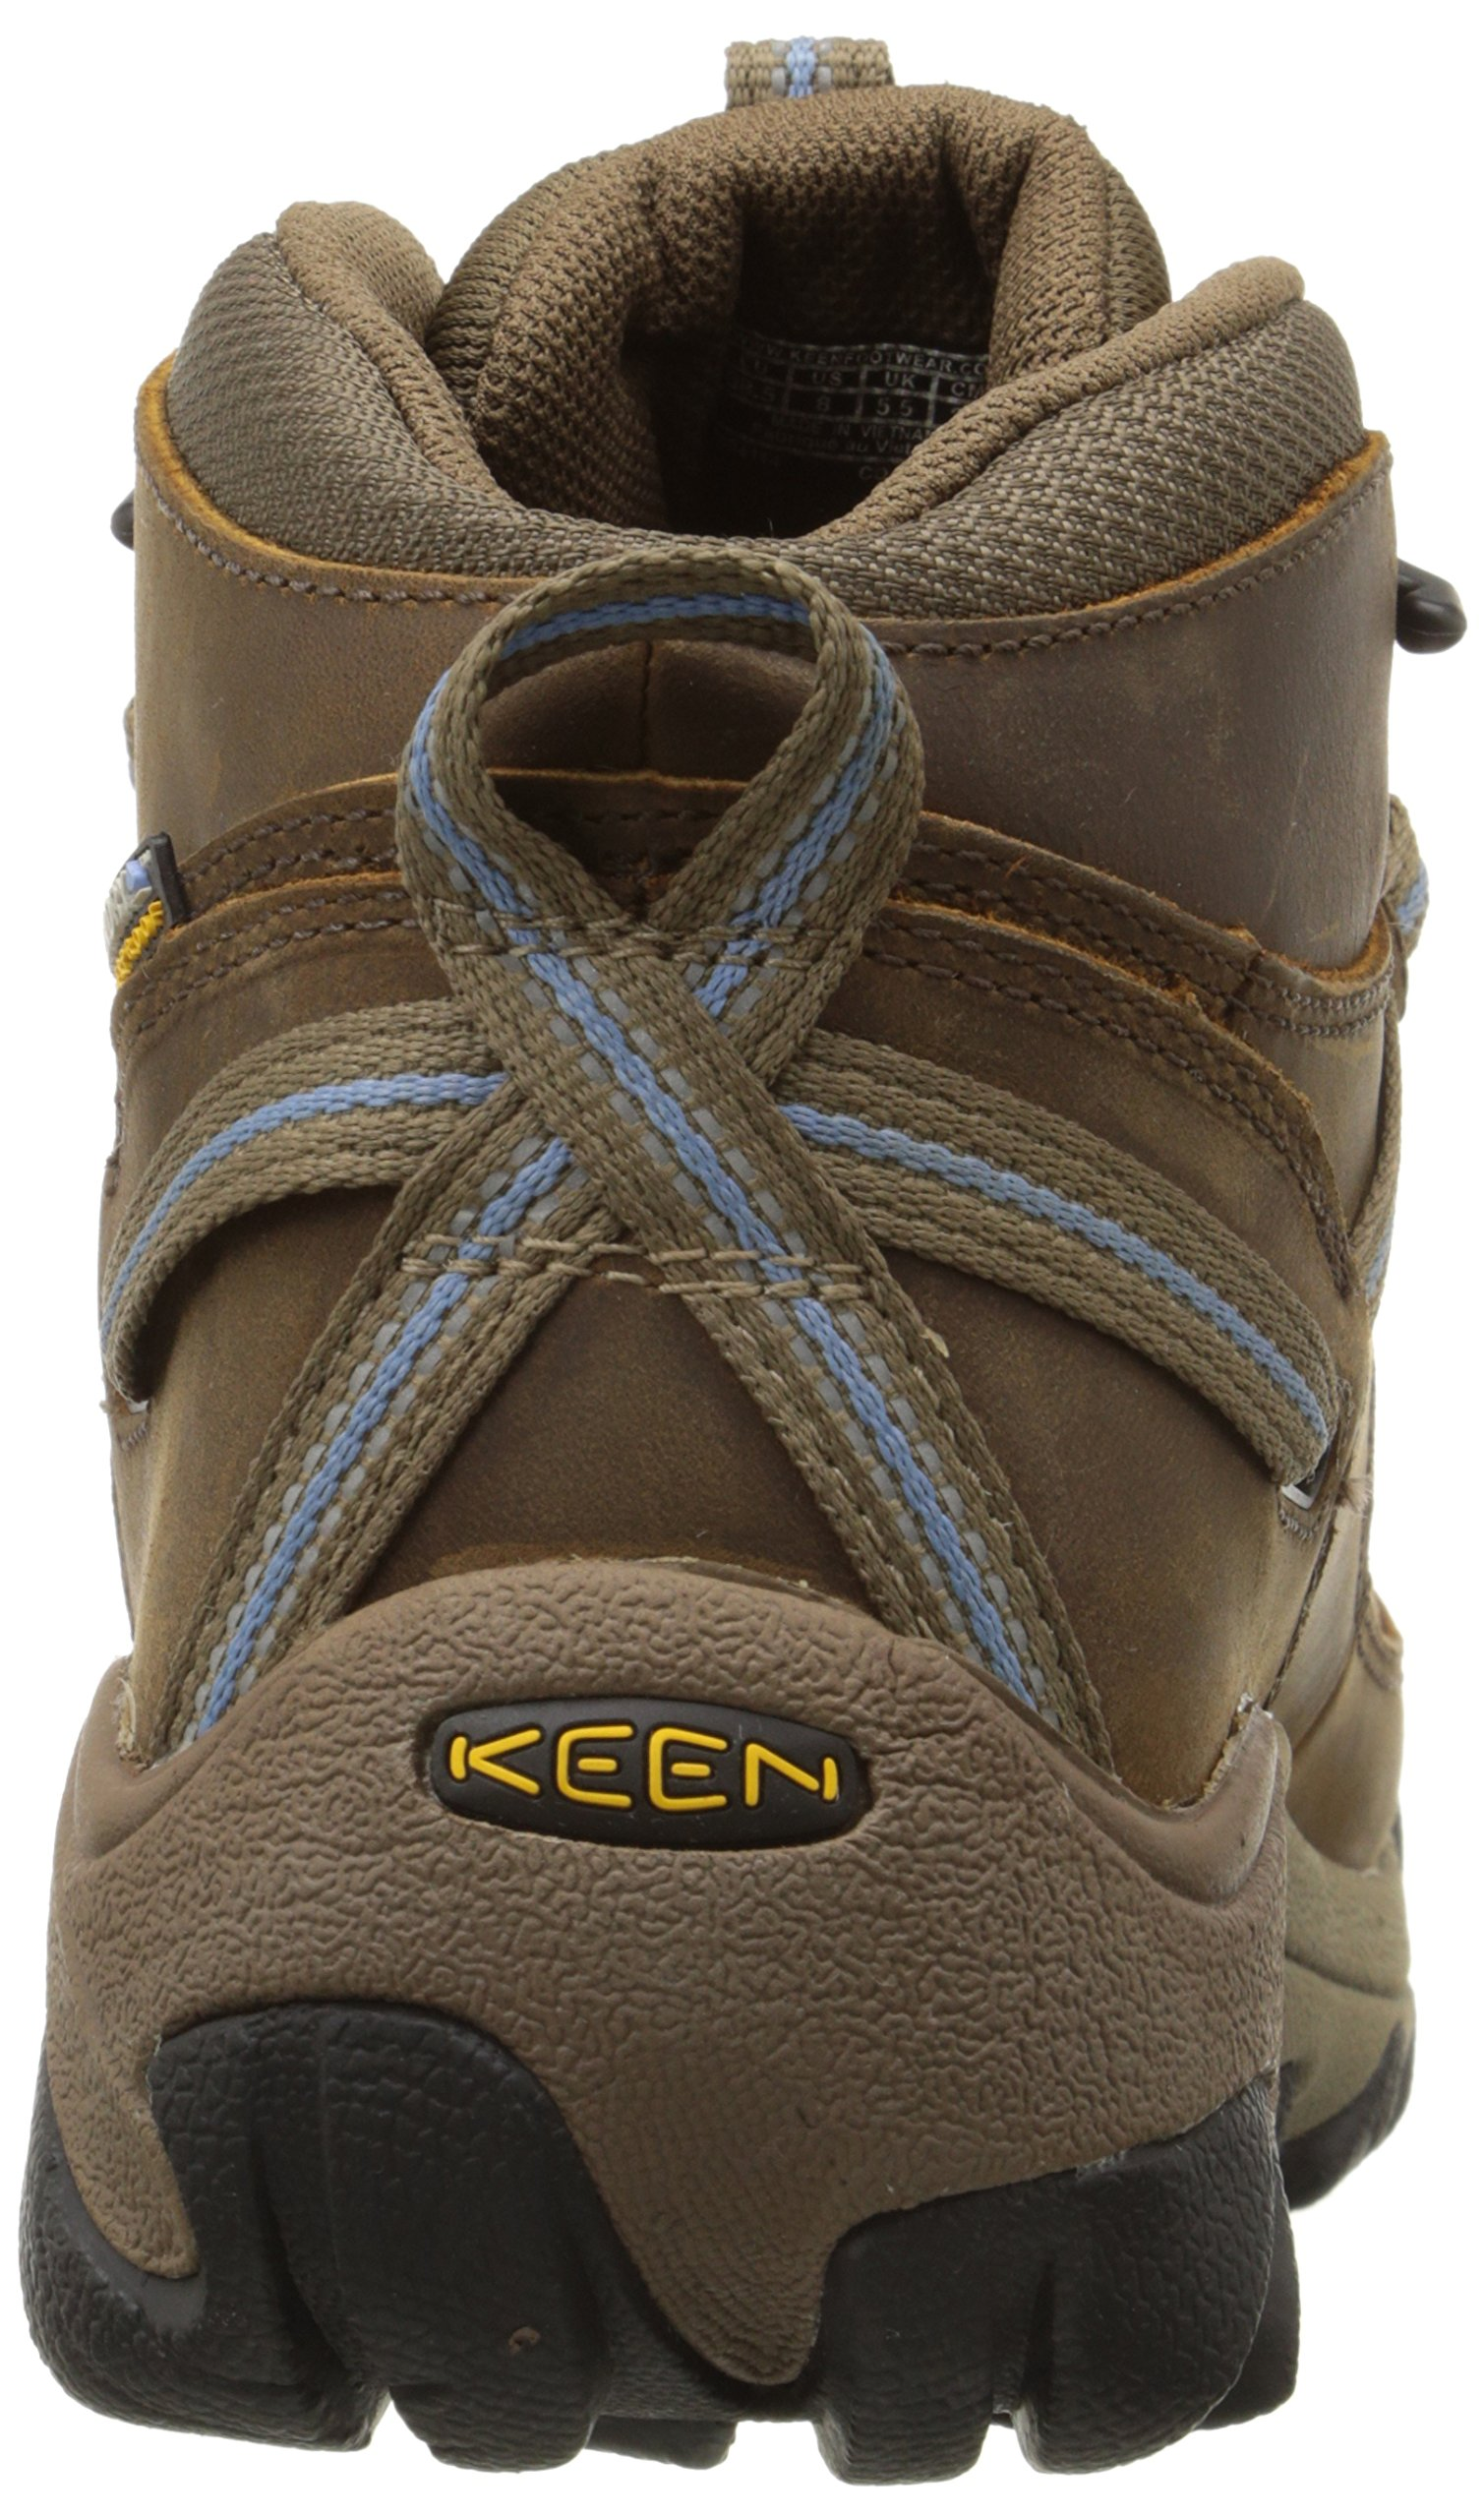 KEEN Women's Targhee II Mid Waterproof Hiking Boot,Slate Black/Flint Stone,8.5 M US by KEEN (Image #2)